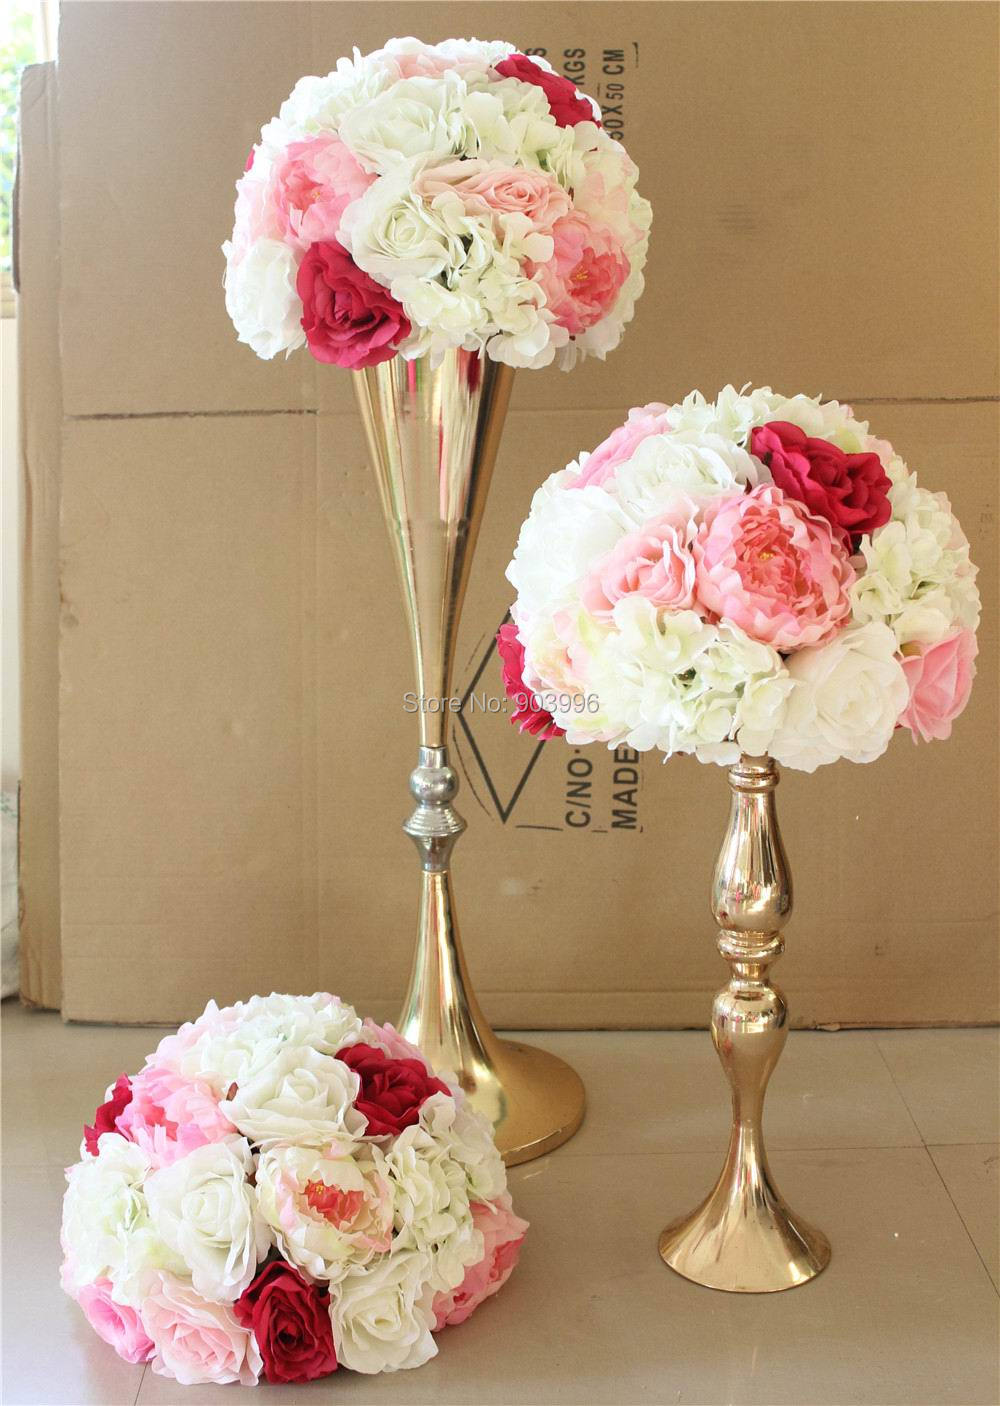 SPR mix Pink series artificial rose wedding flower wall backdrop road lead flower table